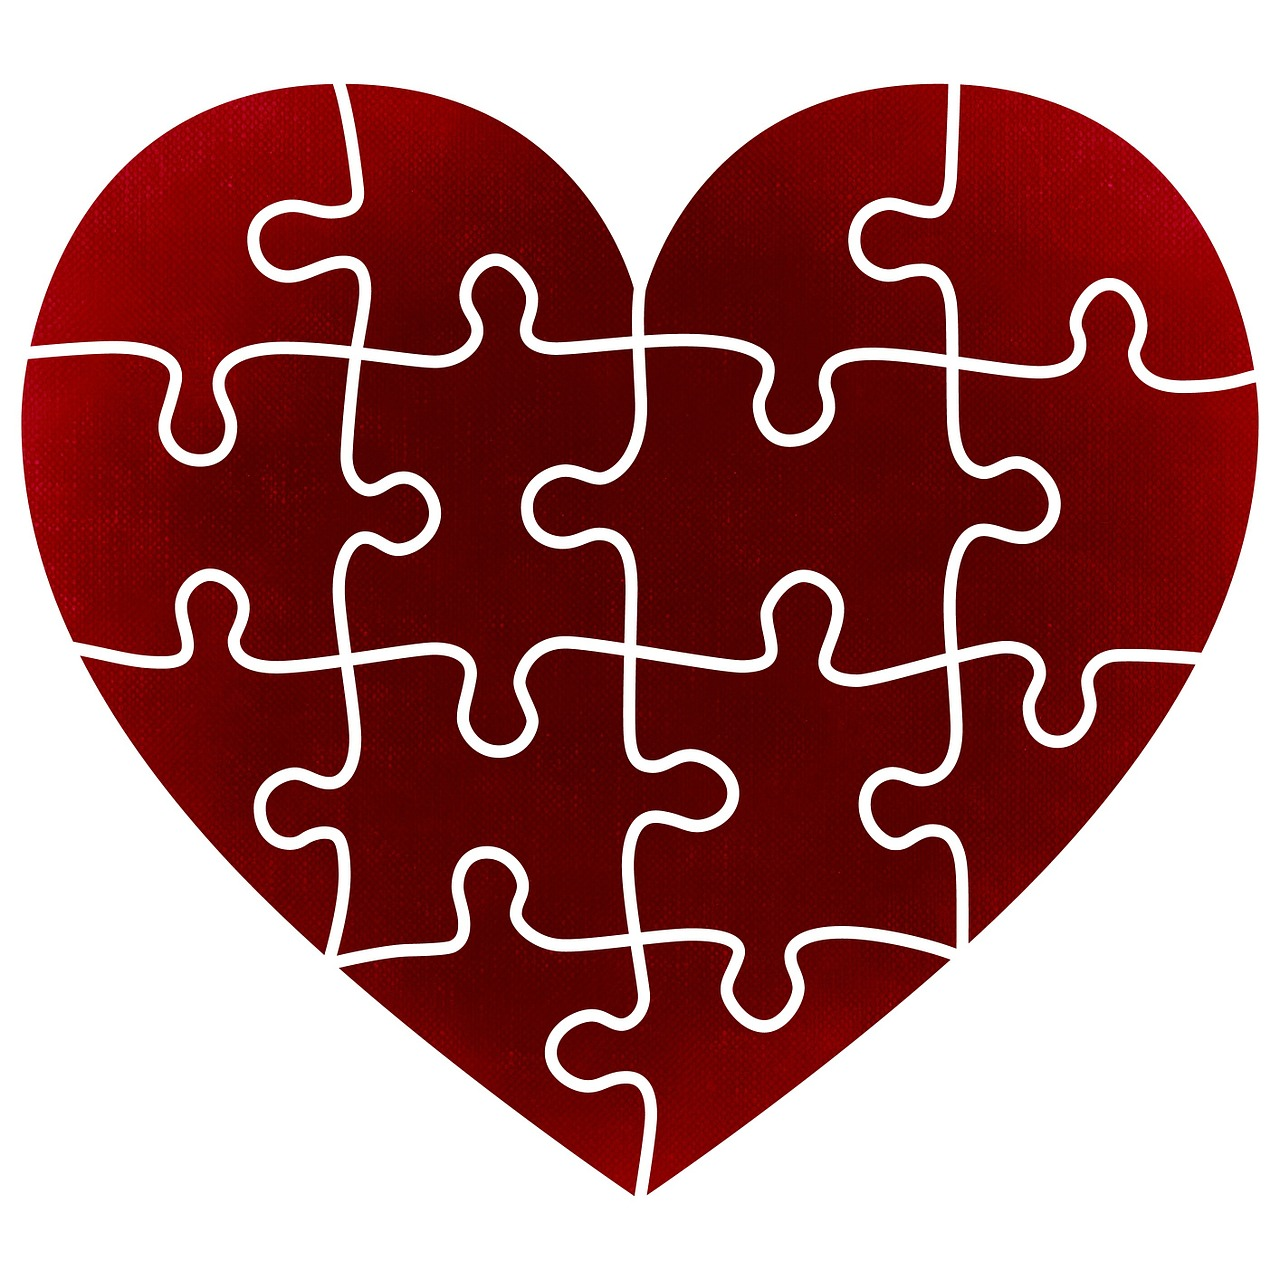 A jigsaw shaped as a heart.